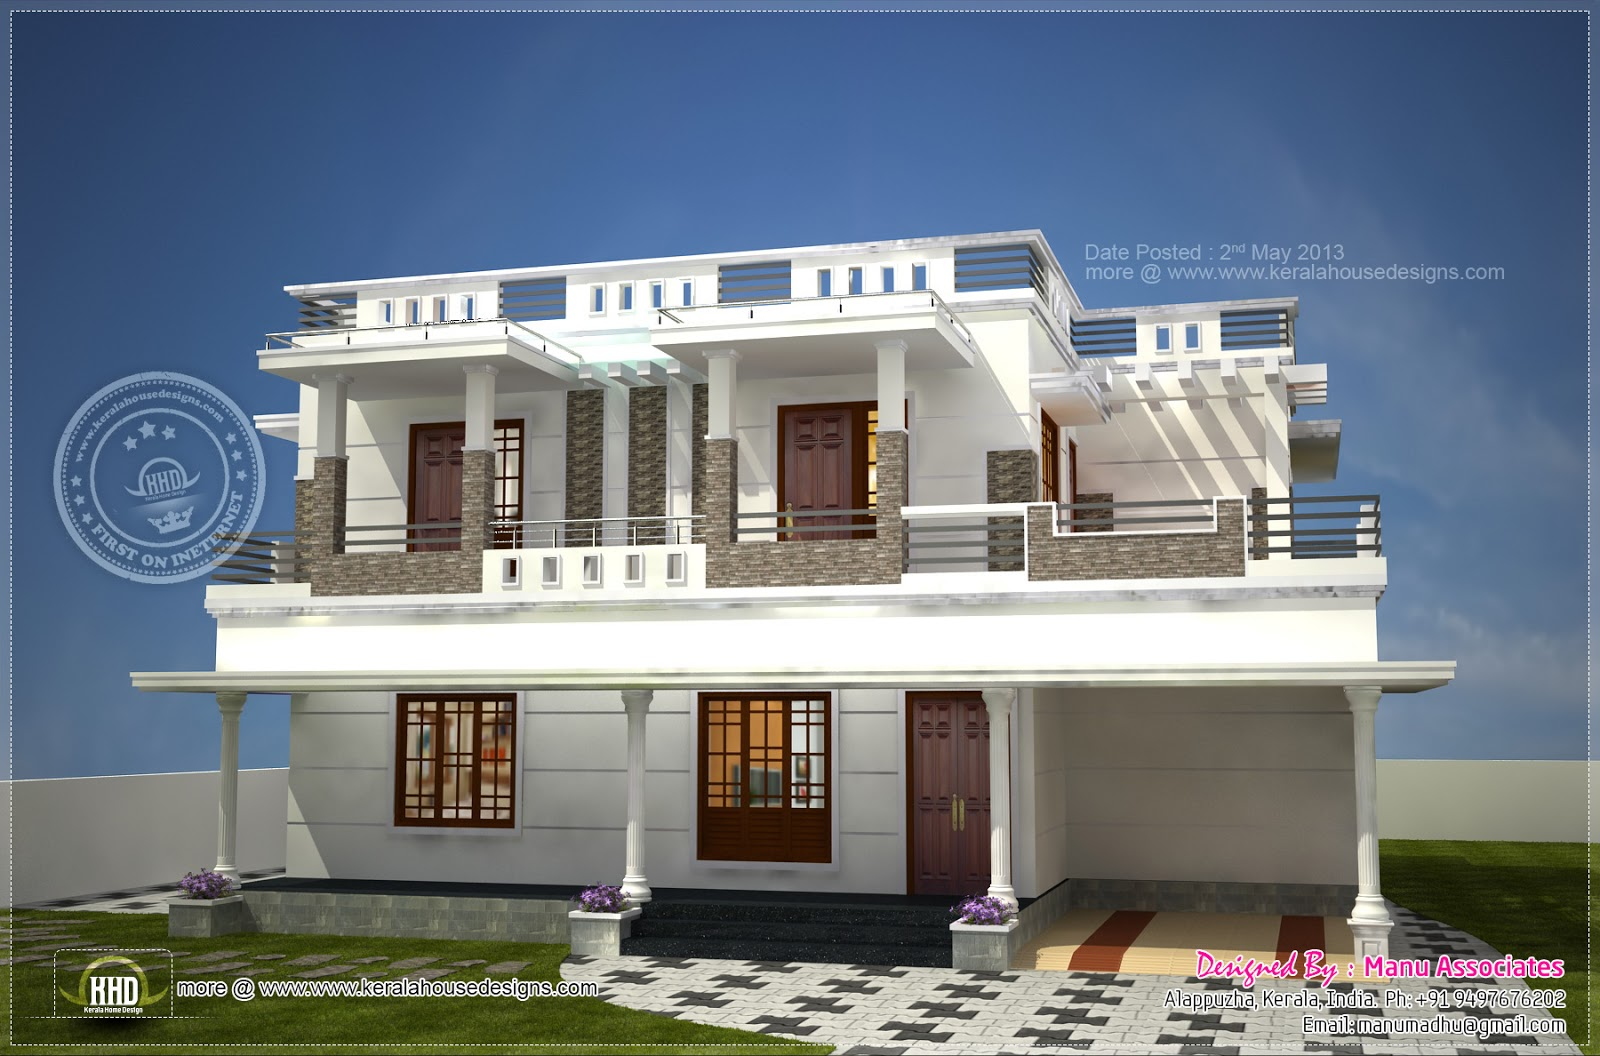 Modern home design in alappuzha kerala house design plans Modern home design